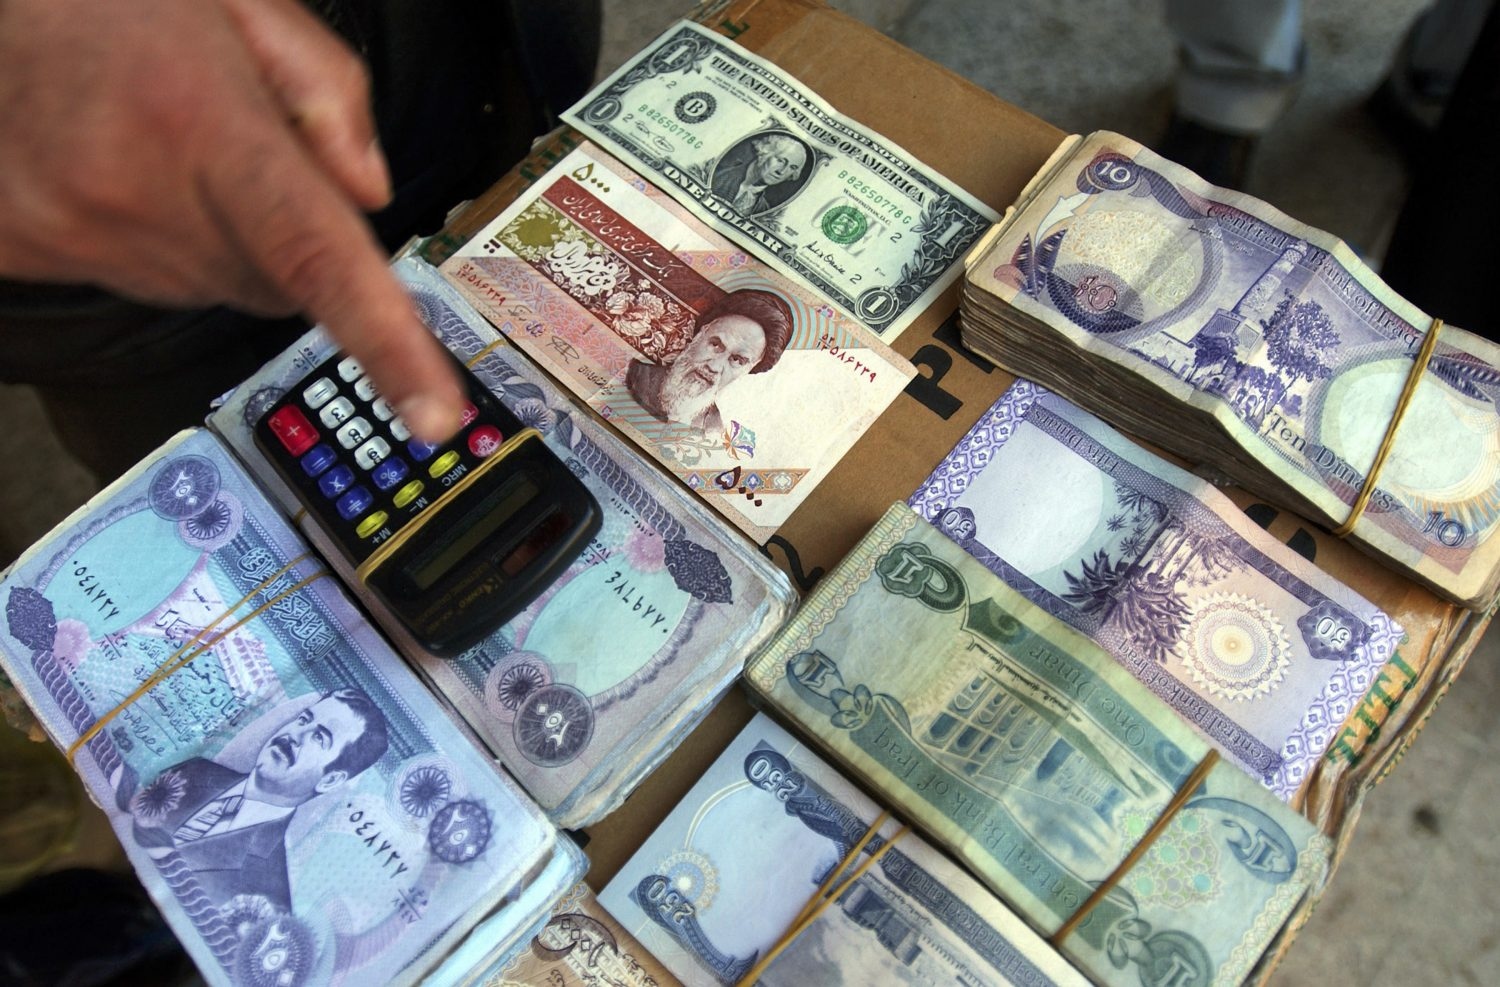 Iraqi, Iranian and American currency being changed on a street stall. Soon the head of Saddam Hussein on Iraqi banknotes will be a thing of the past. The old banknotes are being replaced by new ones.